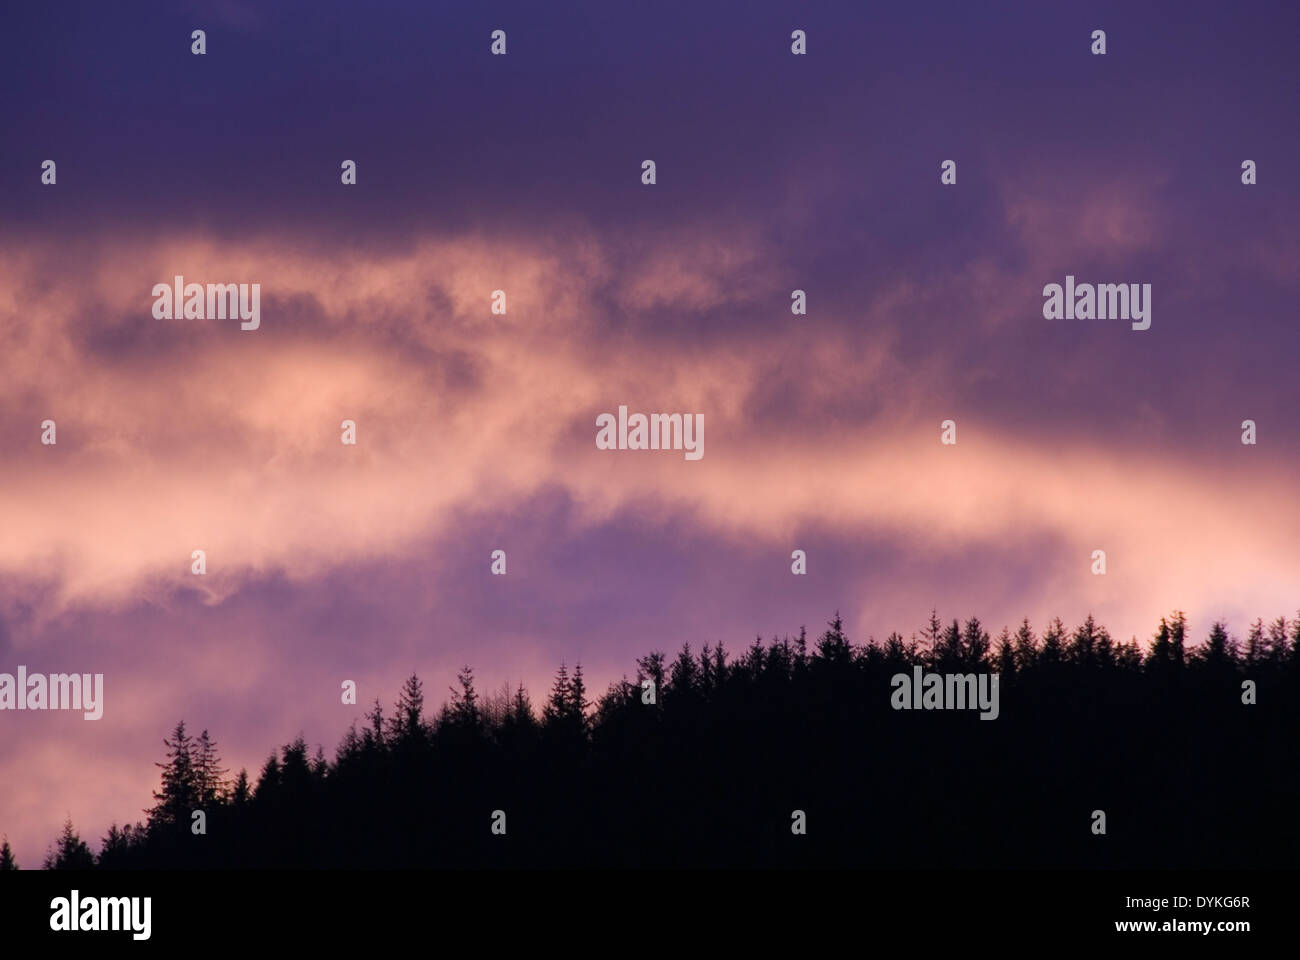 Dawn cloud skyscape behind silhoette of a fir tree forested hill, Snowdonia, Wales, UK - Stock Image